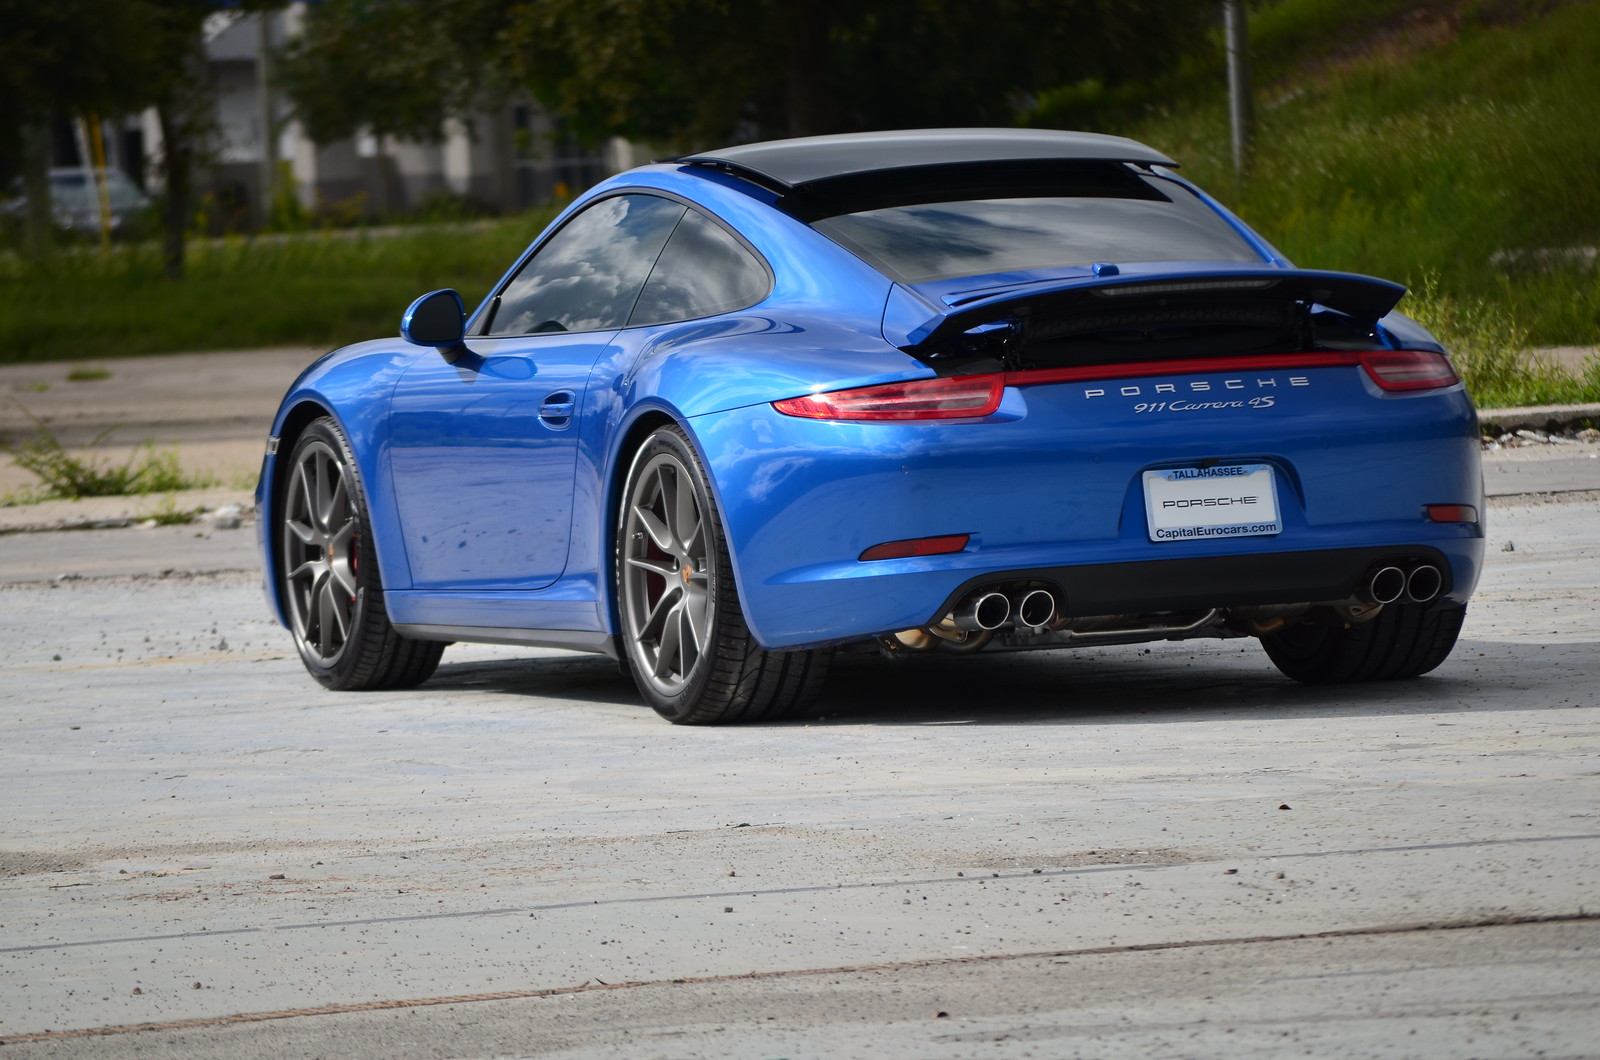 New 2015 911 C4s Coupe Sapphire Blue At Capital Porsche